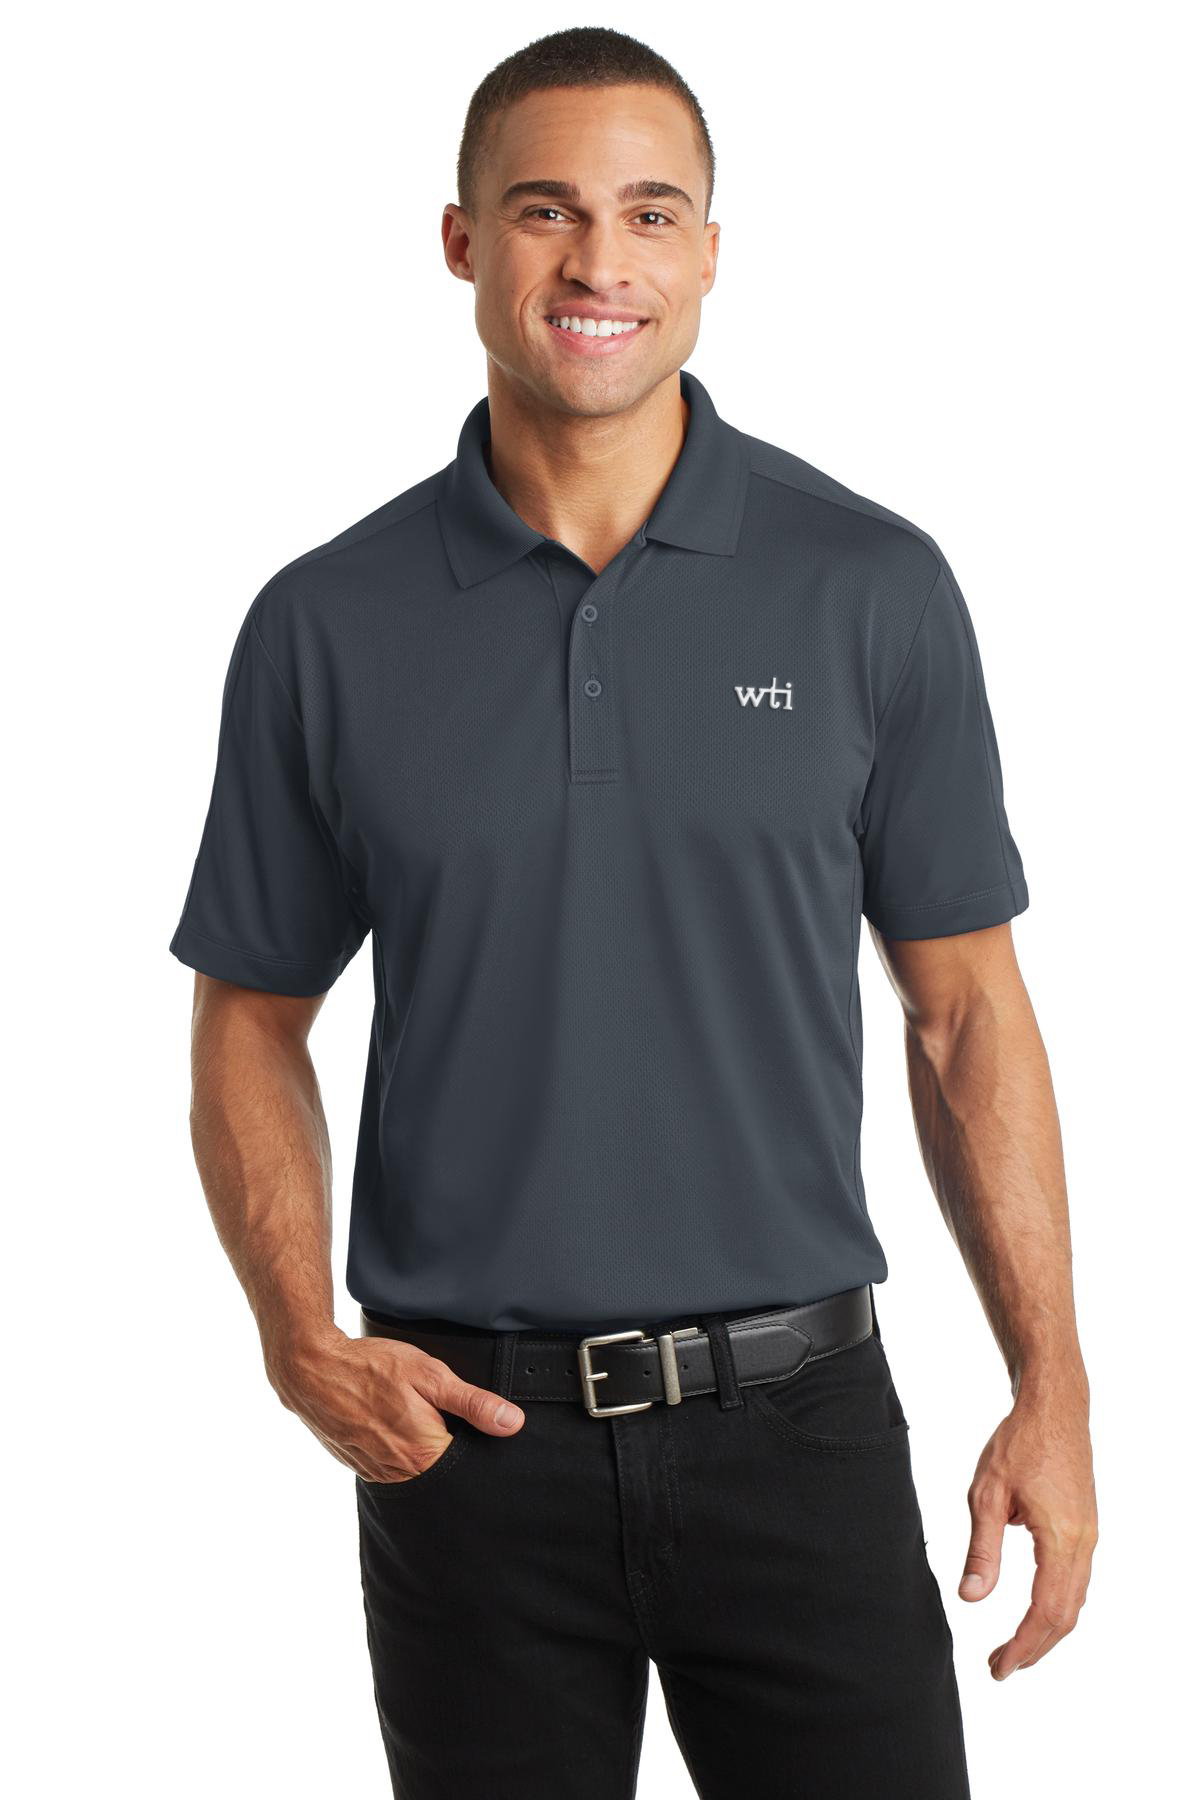 PA Diamond Jacquard Polo. K569. Prices Starting At $23!